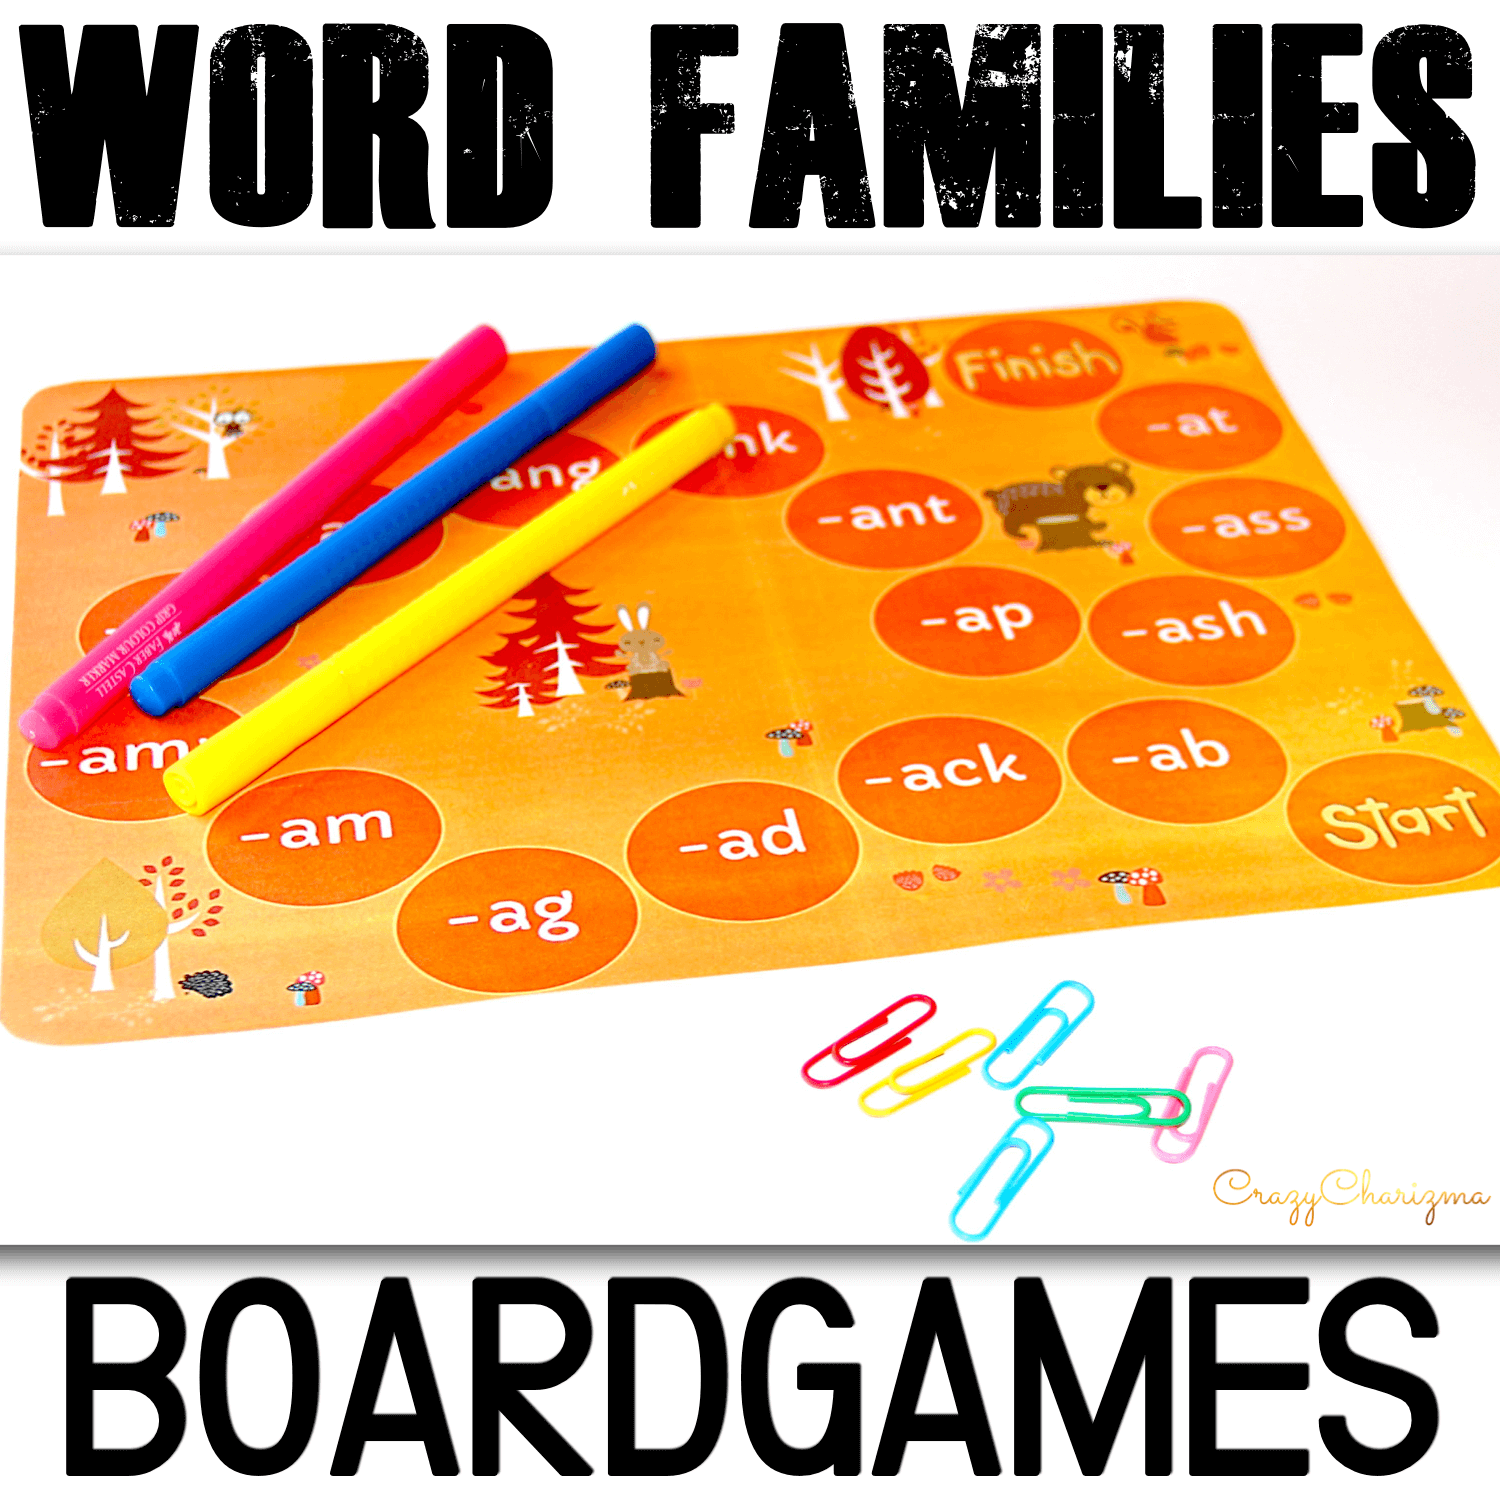 Practice short A, short O, short E, short I and short U words and word families with kids. These boardgames are perfect to use in fall (Halloween, Thanksgiving, leaves, forest). Appropriate for pre-k, kindergarten, and first grade students. Use in/for literacy centers, small groups.